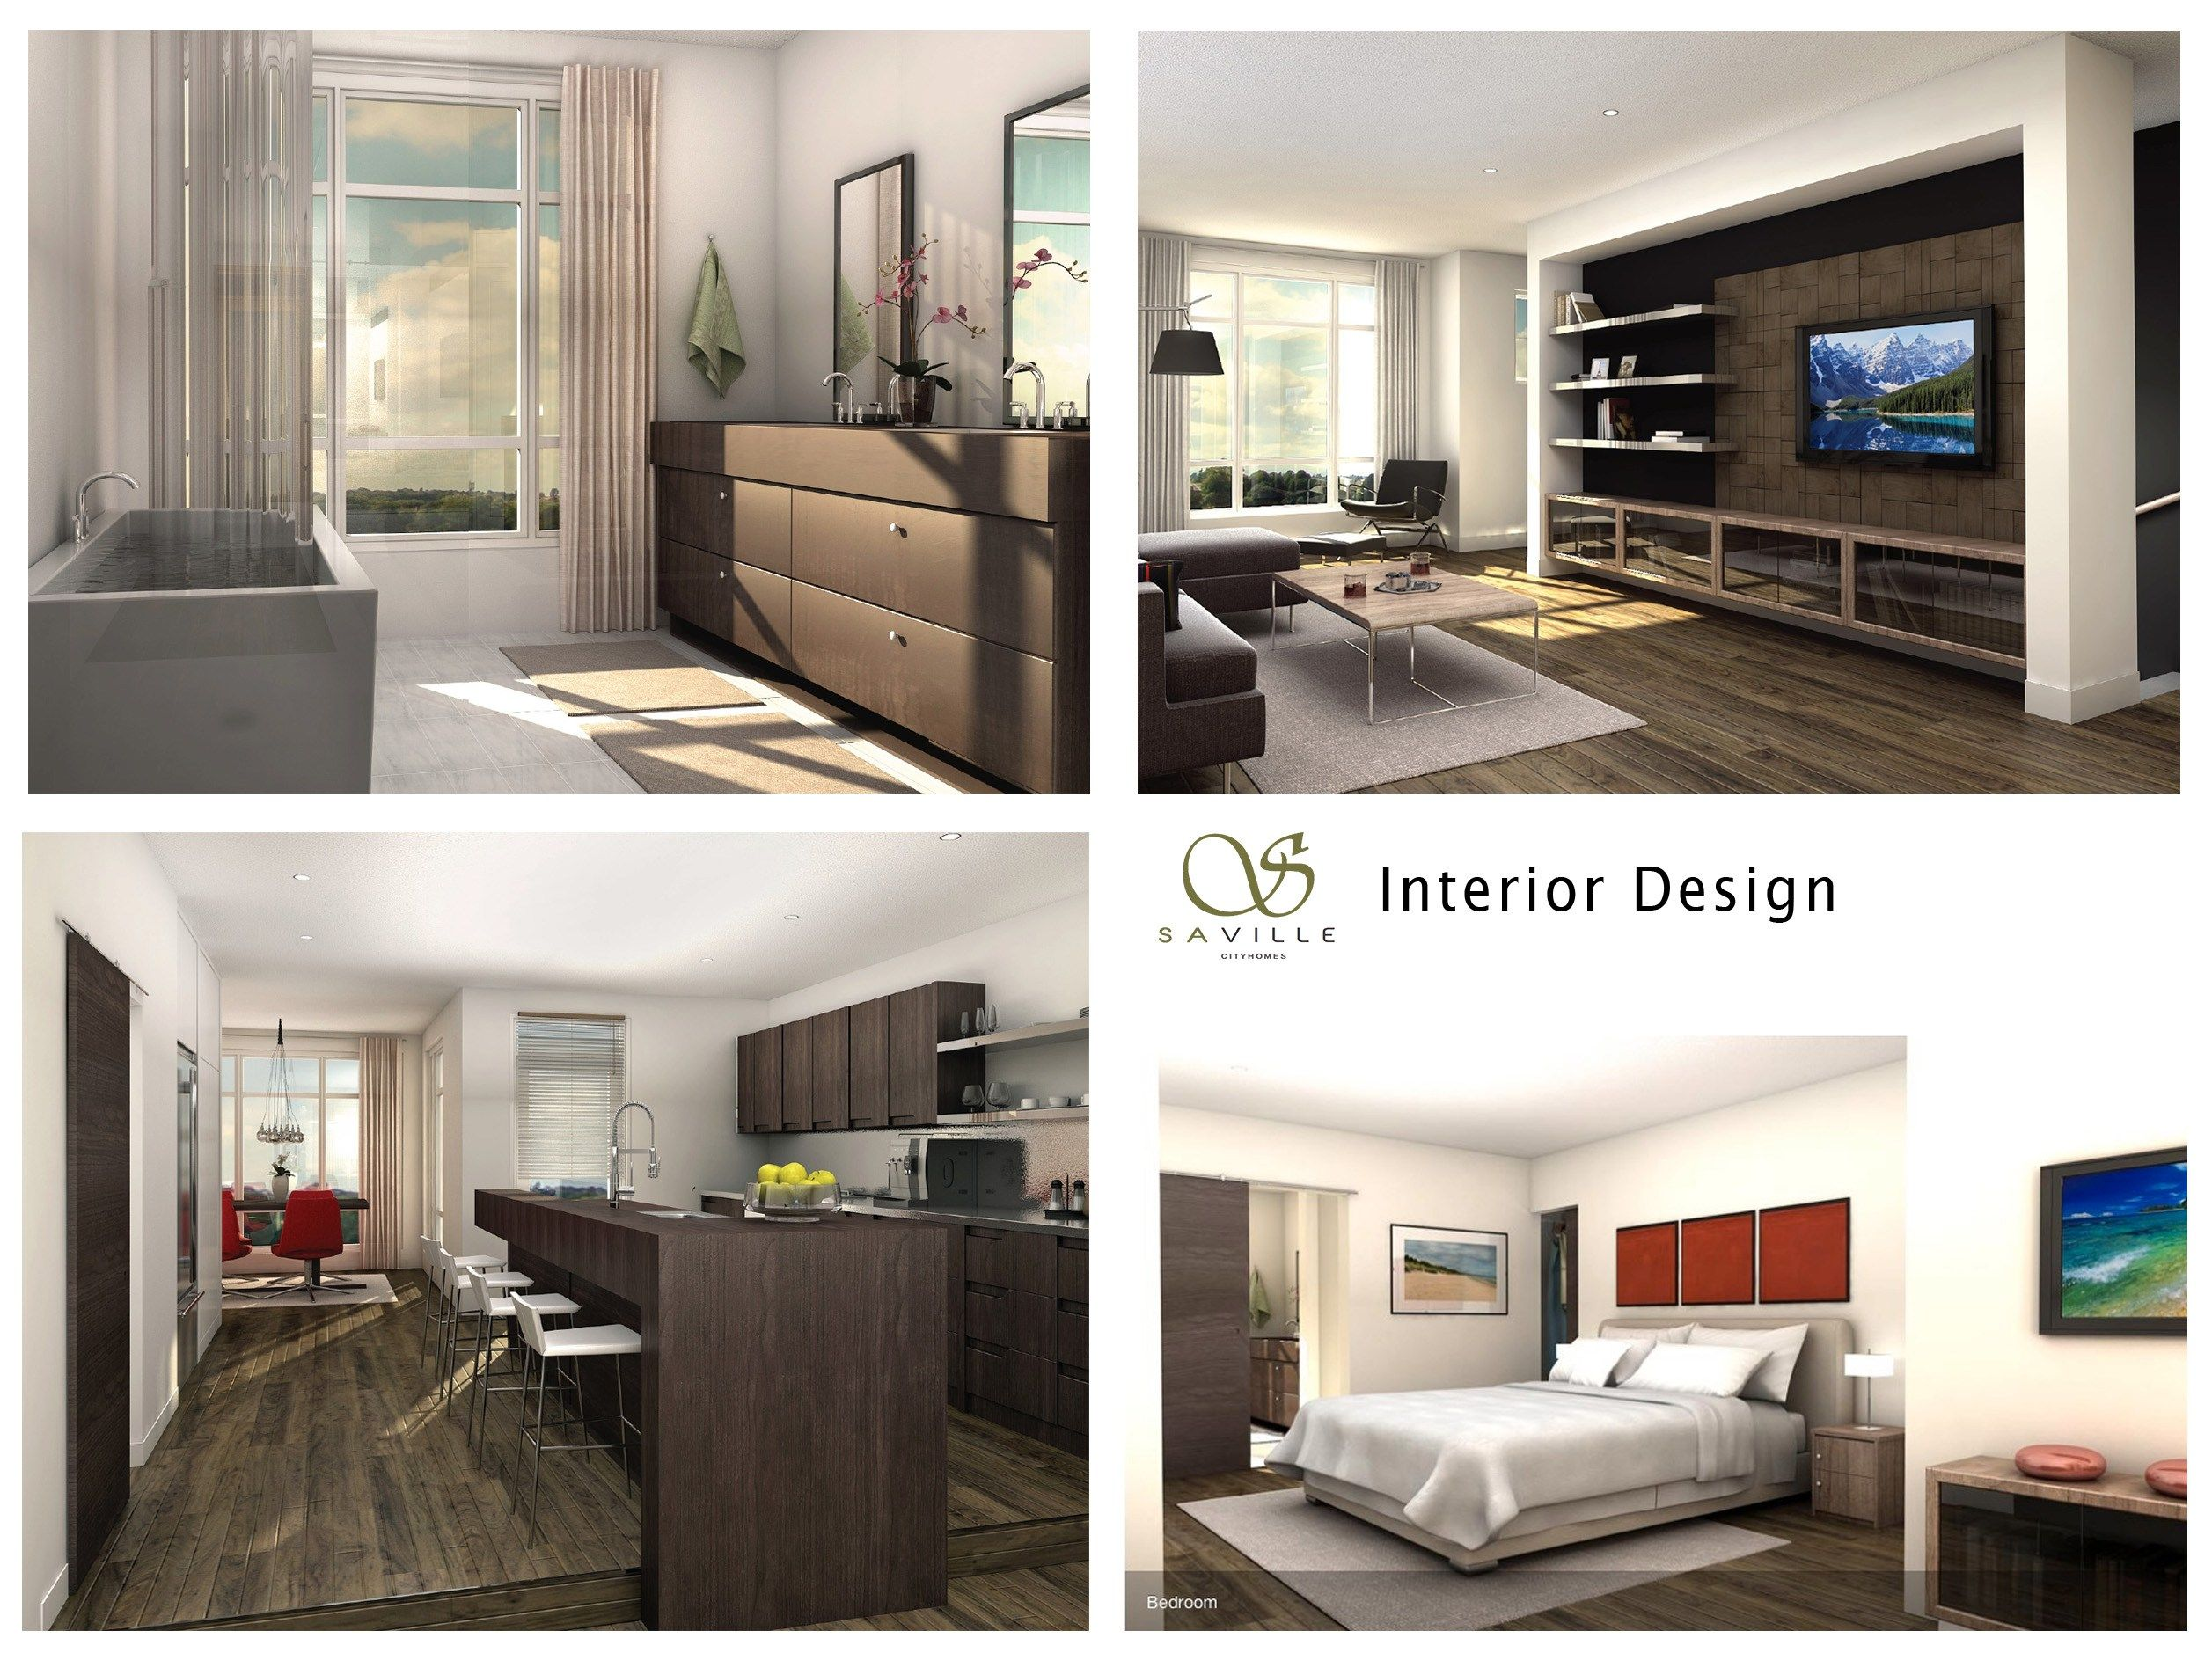 Home Design Online Interior Design And Decorating Tools Design Your Own Bedroom Design Your Bedroom Bedroom Design Decorate living room app